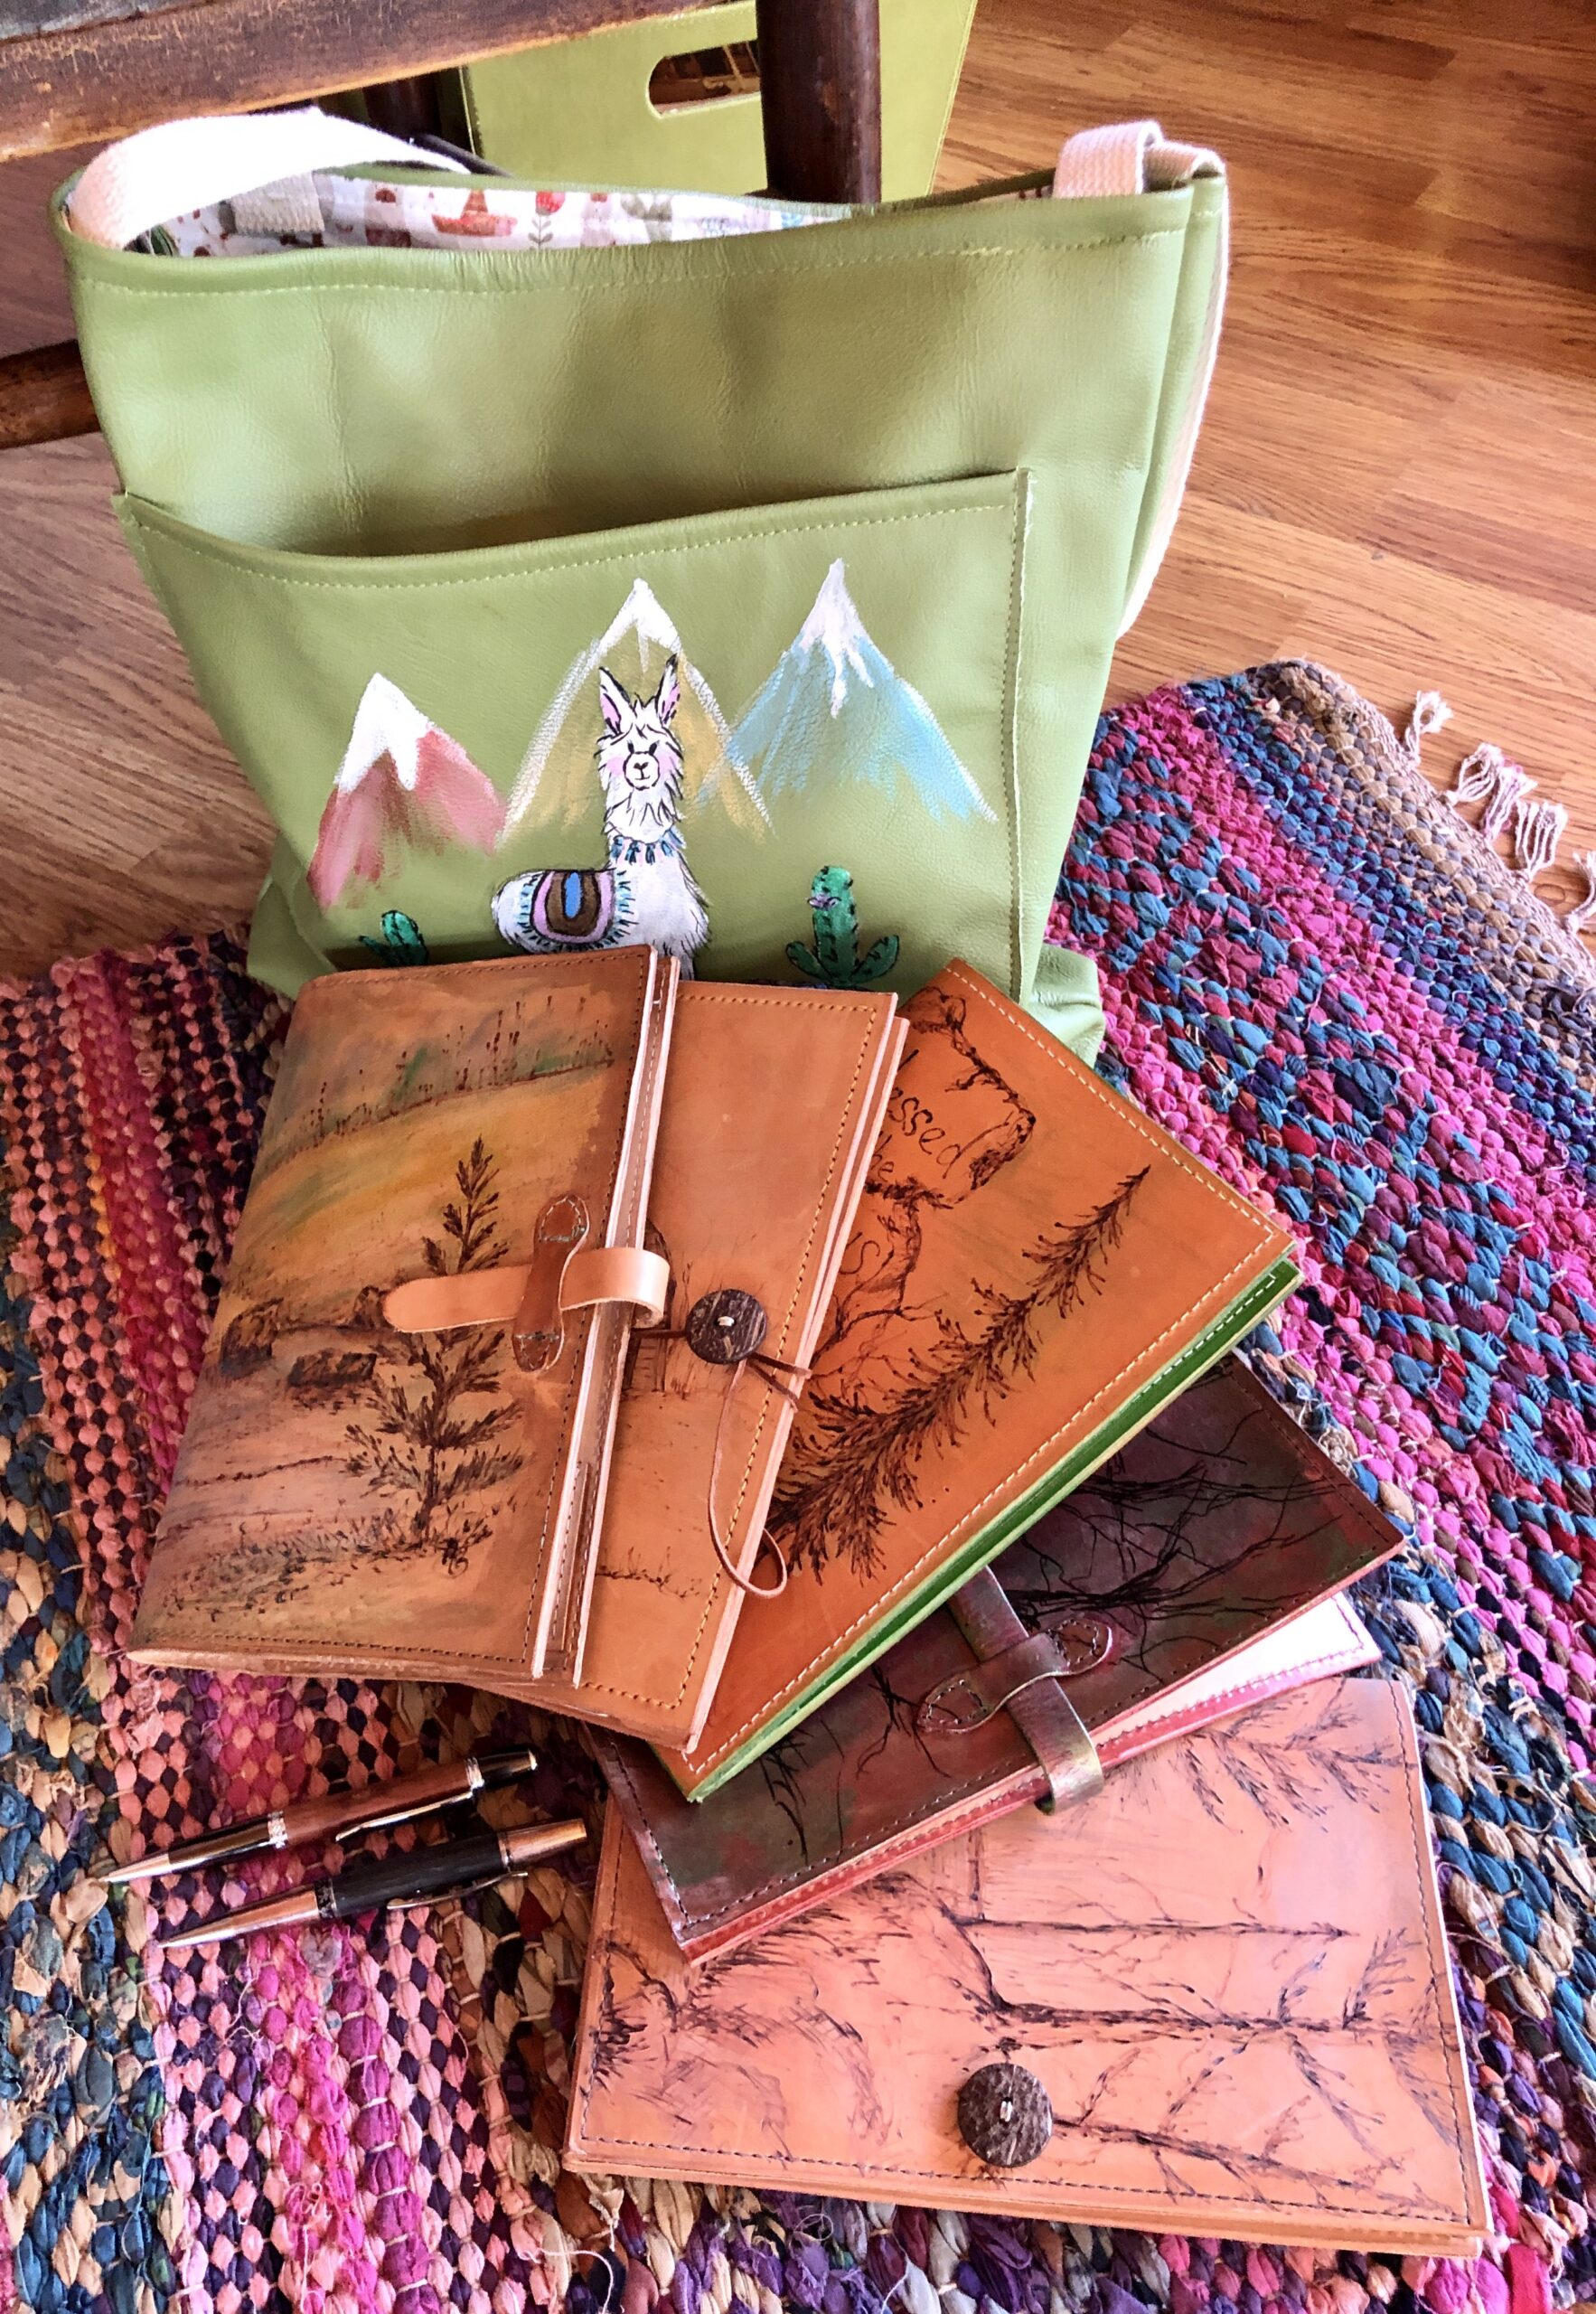 https://www.etsy.com/NorthernFern/listing/748182578/veg-tan-leather-journal-artisan-made?utm_source=Copy&utm_medium=ListingManager&utm_campaign=Share&utm_term=so.lmsm&share_time=1606079525162